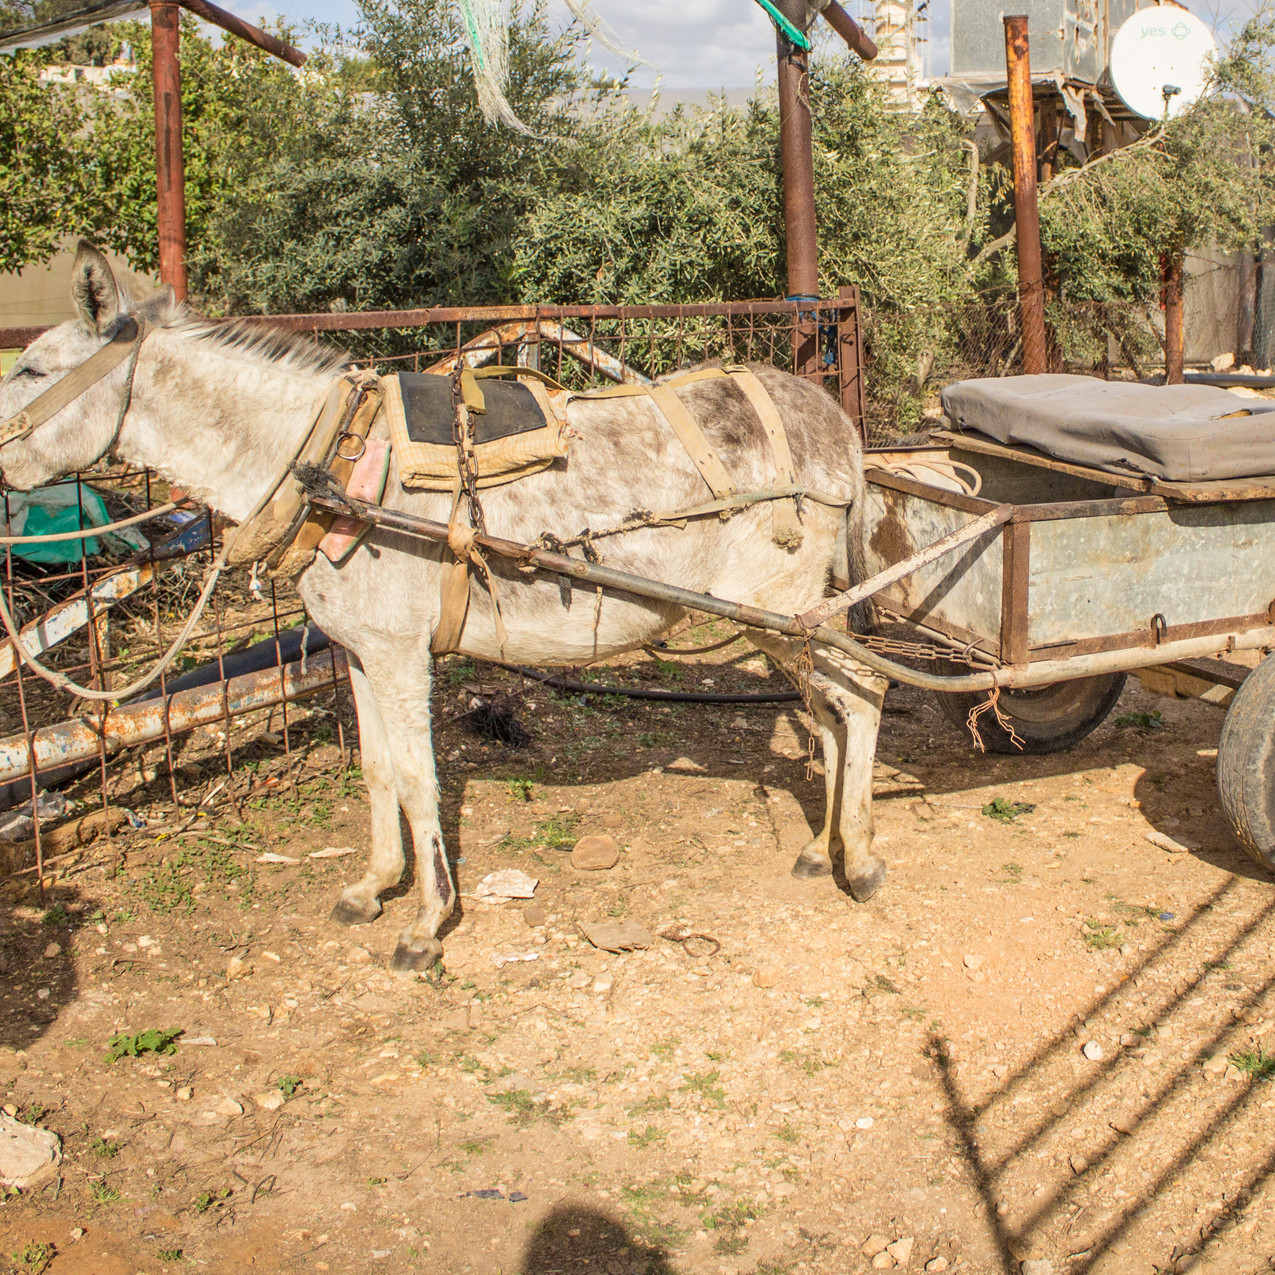 Pregnant donkey made to pull a cart at outreach clinic in a Palestinian village